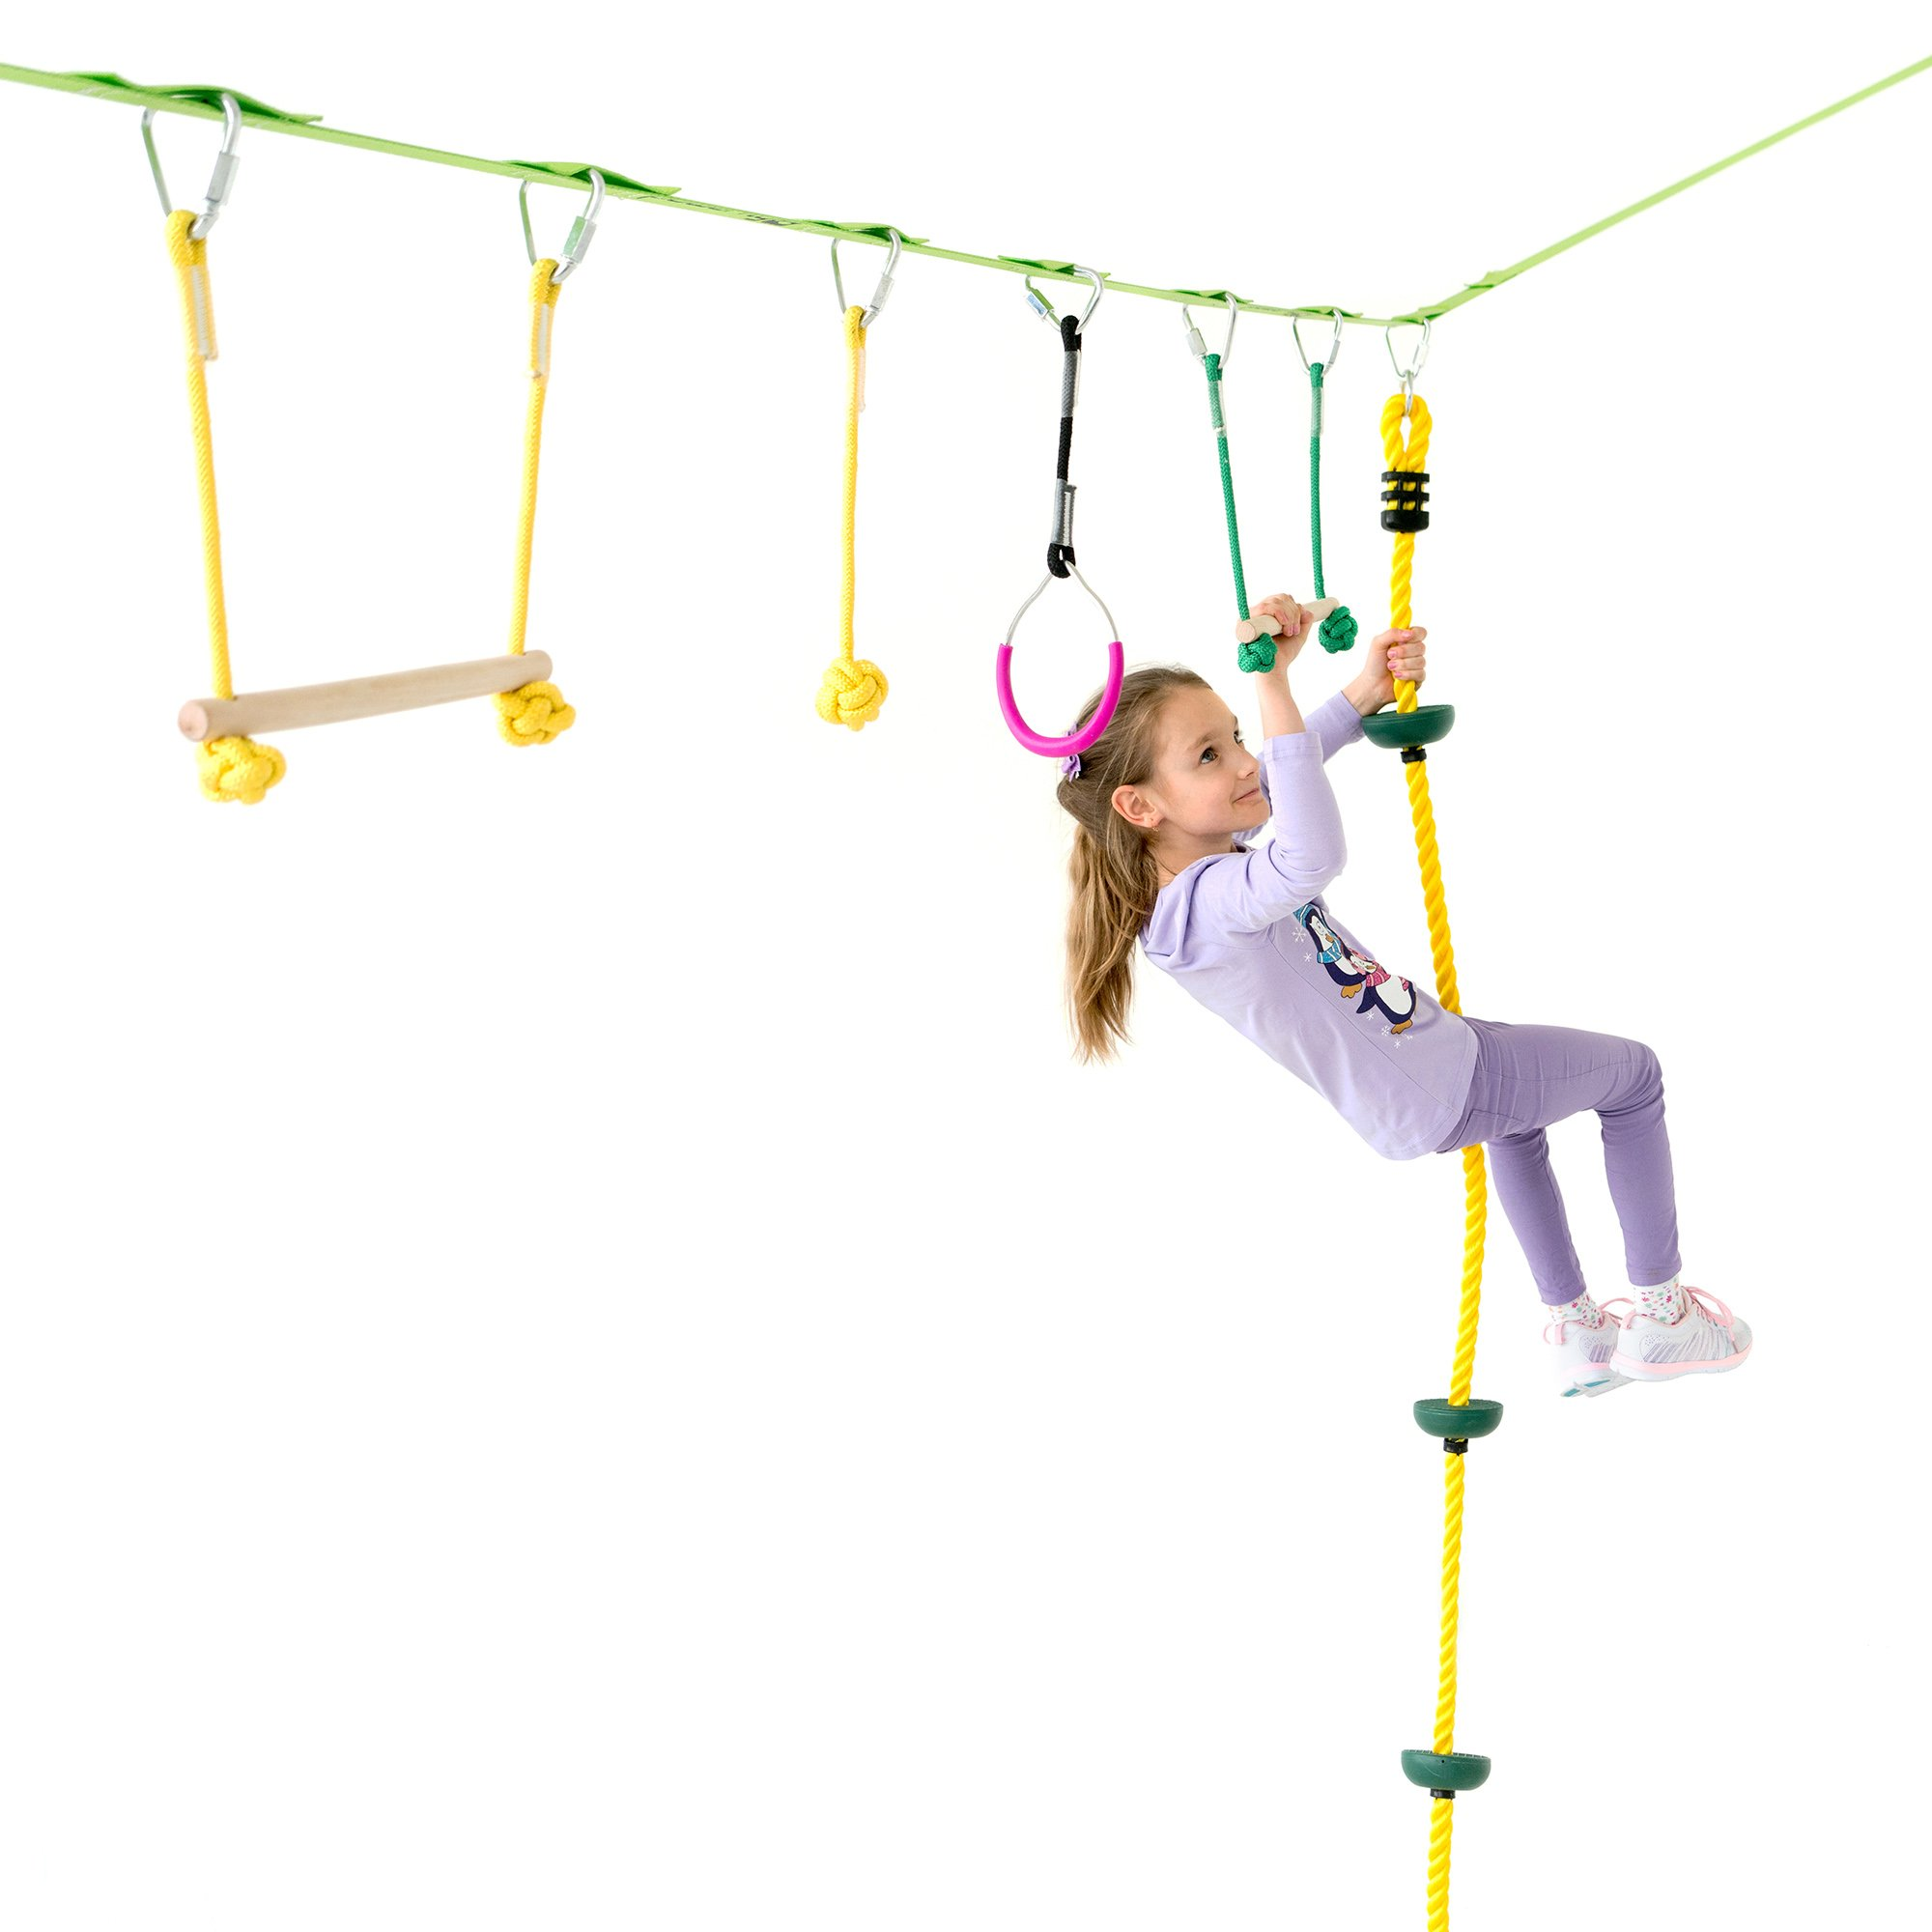 Powerfly Ninja Hanging Obstacle Course Kit for Kids - 36' Slackline, 2 Monkey Bars, 2 Gymnastics Rings, 3 Fists, Climbing Rope - Obstacles Line Equipment Set for Backyard Playground Activities